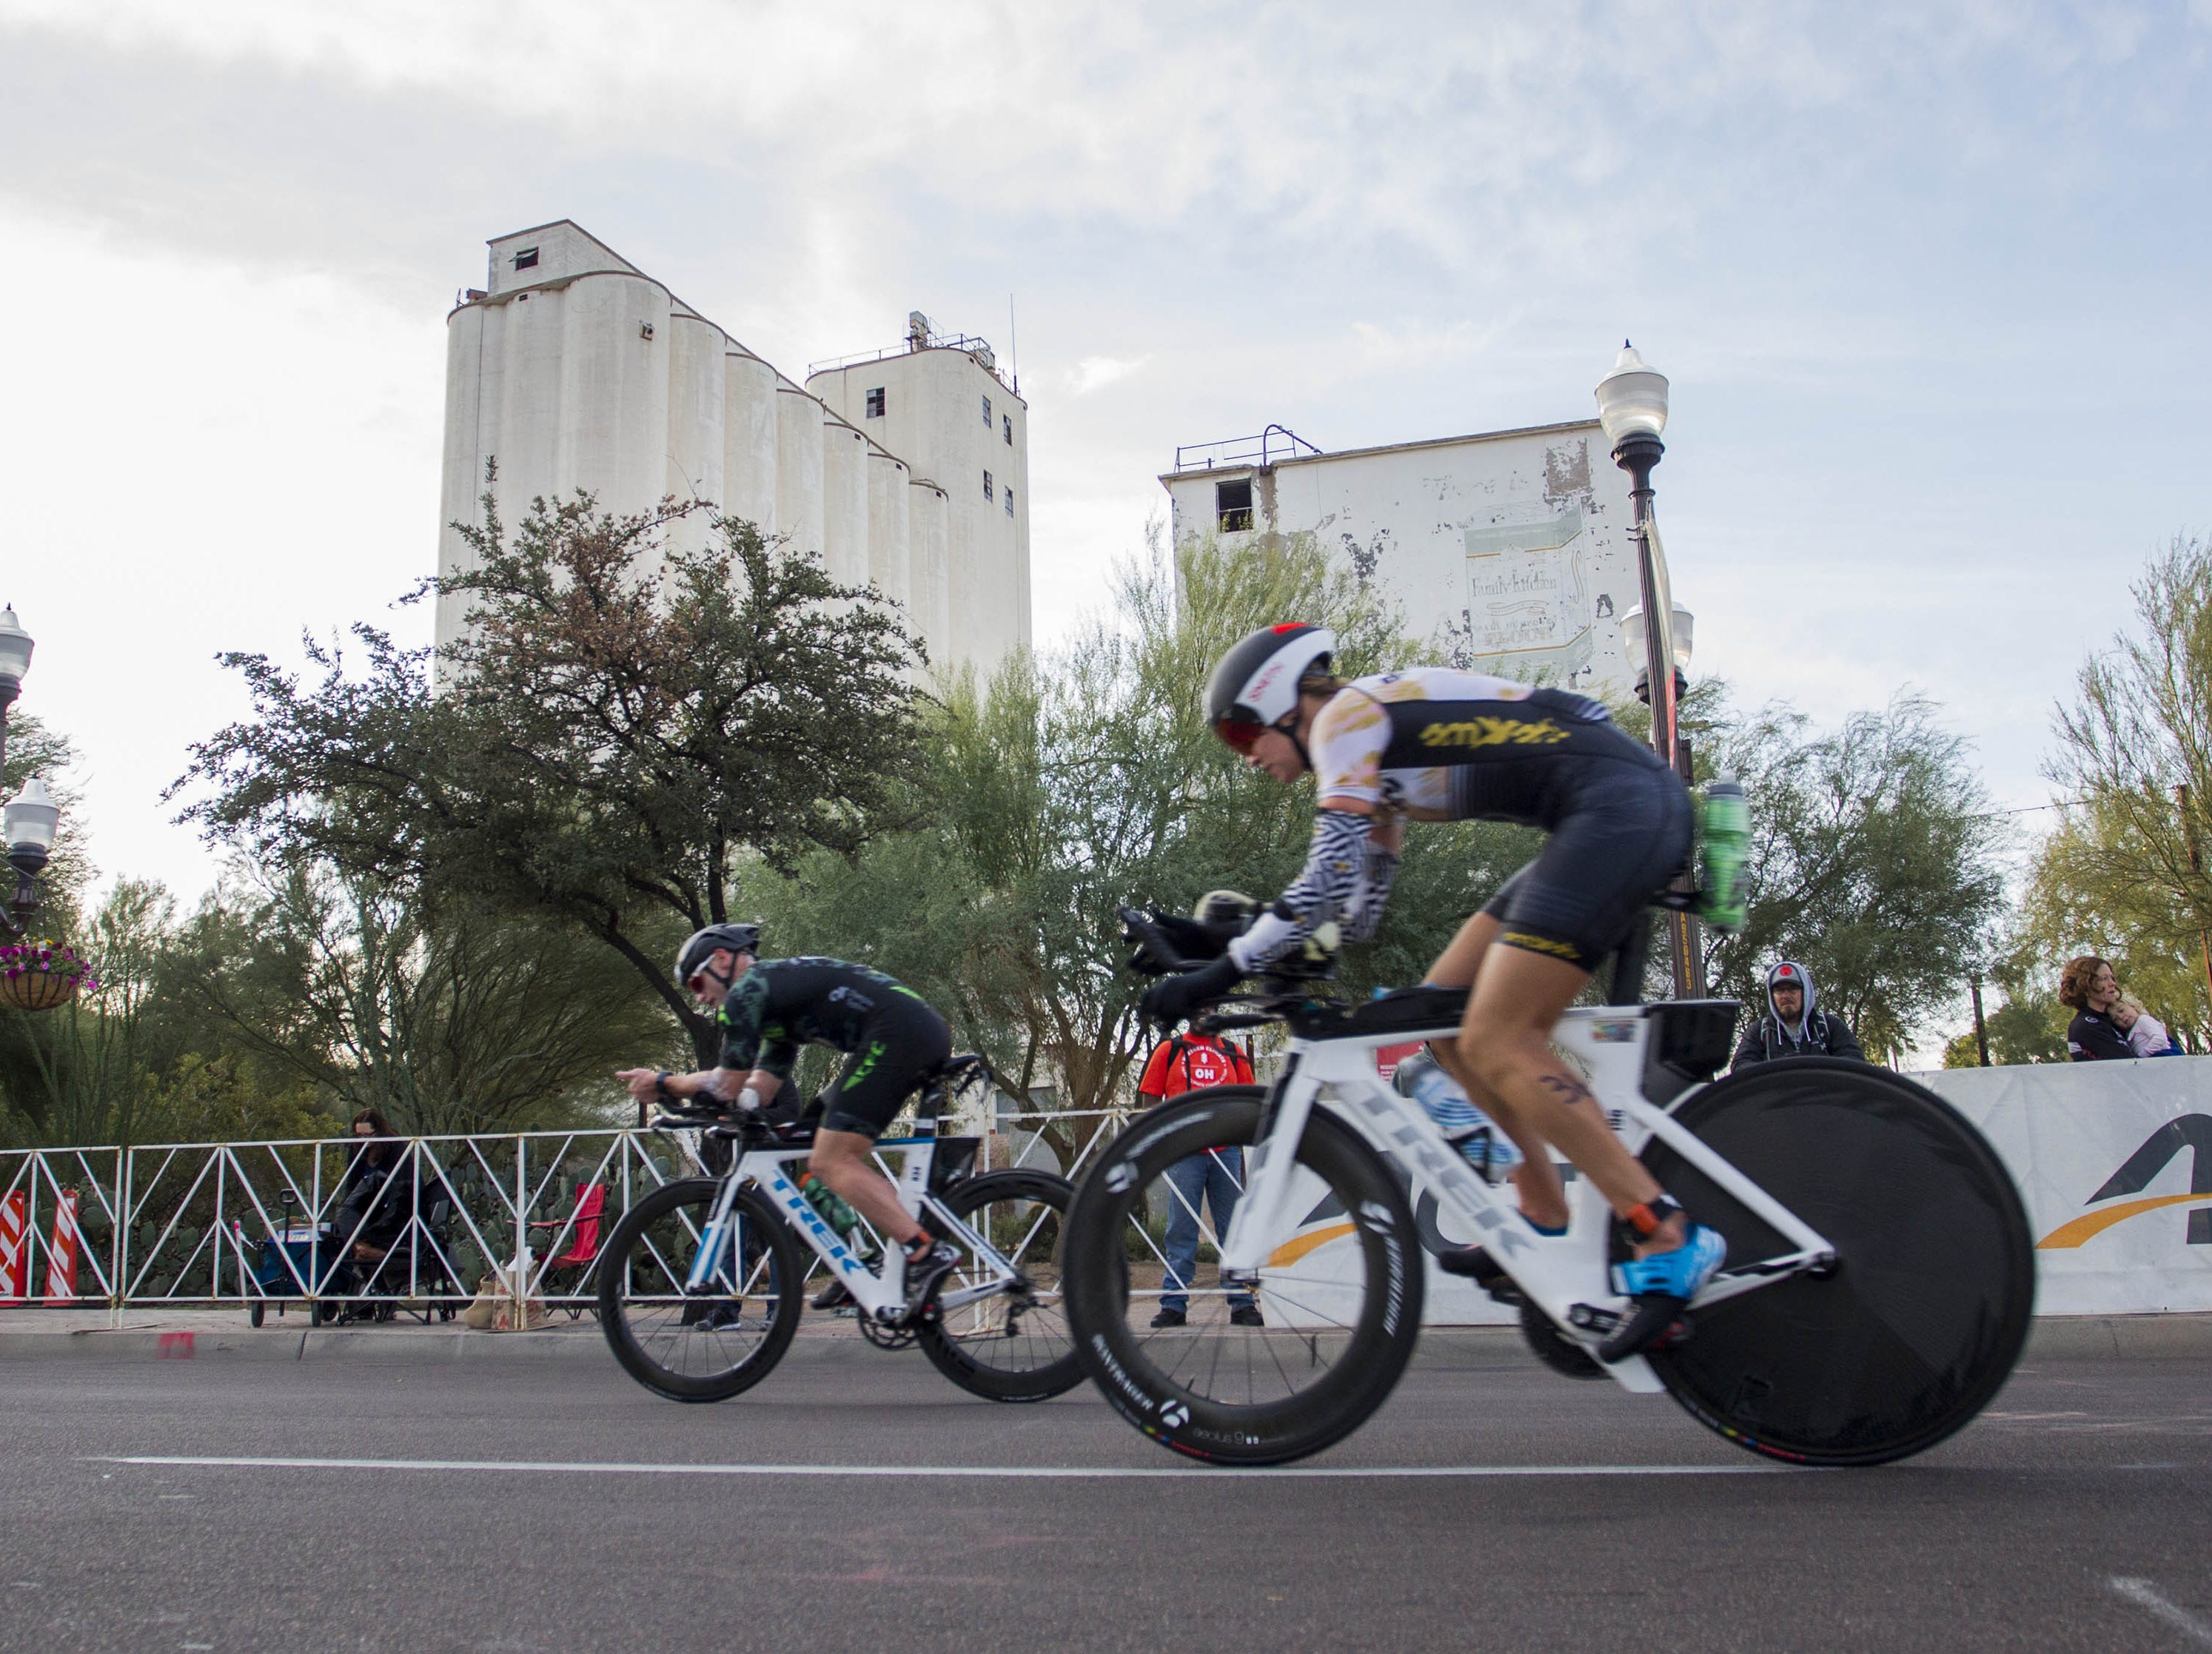 Ironman competitors ride by the old Hayden Flour Mill at the start of the bike portion of the race during the Tempe Ironman at Tempe Town Lake Nov.18, 2018.